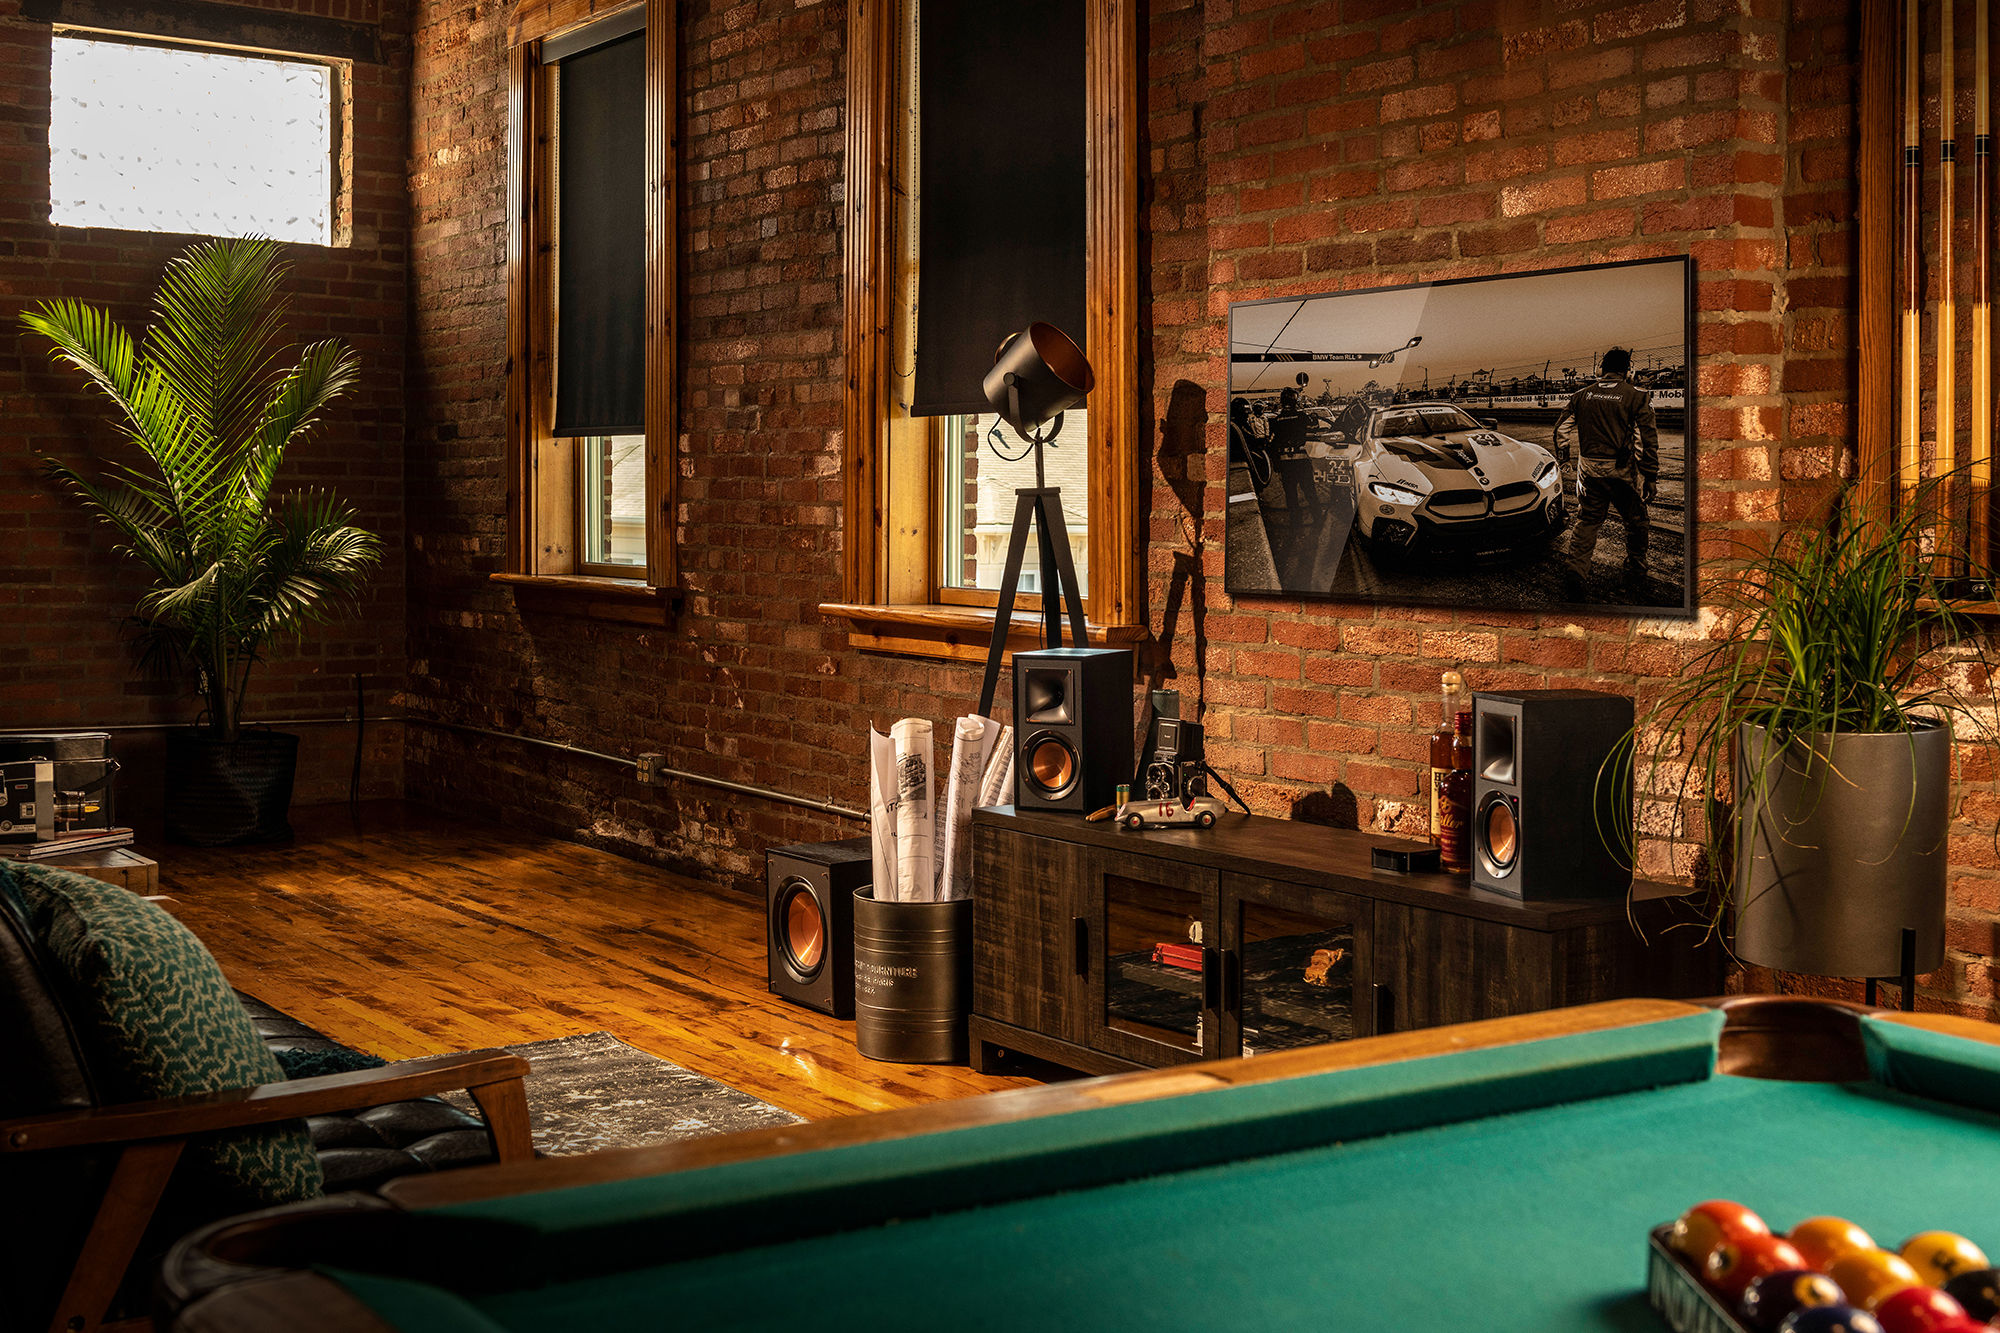 Klipsch Reference Powered Speakers by a pool table